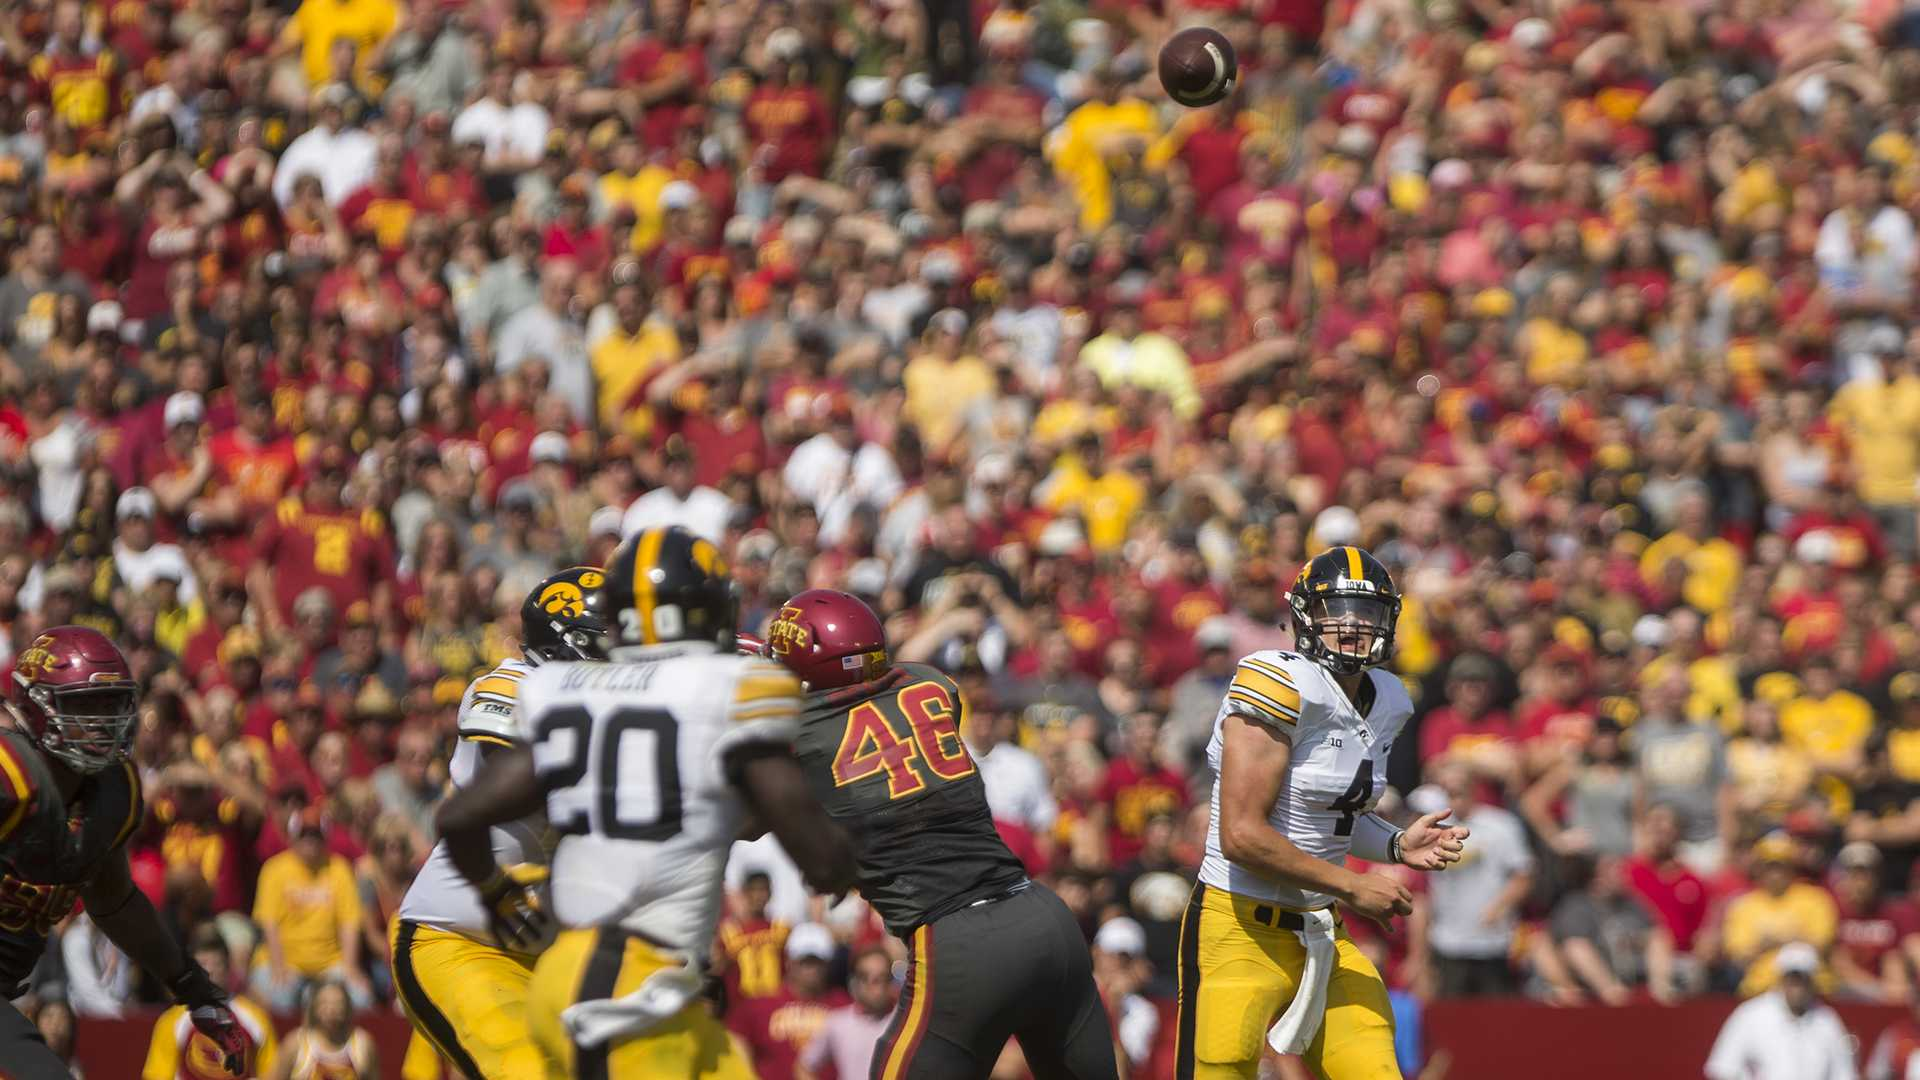 Iowa quarterback Nathan Stanley throws a pass to James Butler during the game at Jack Trice Stadium on Saturday, Sept. 9, 2017.  (Ben Smith/The Daily Iowan)